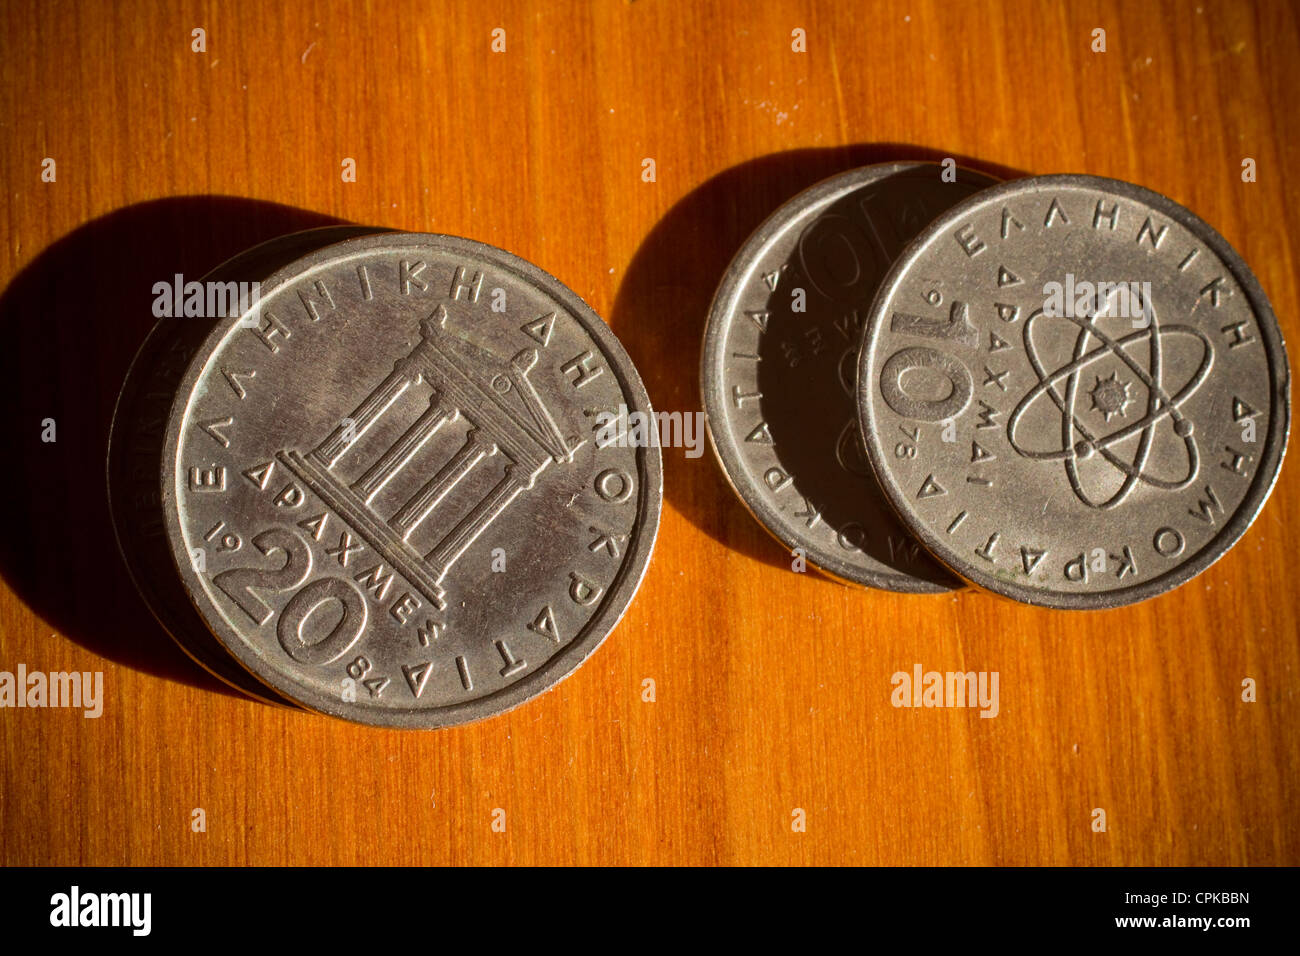 greek drachma coins drachmas Drachmas are the previous currency of greece - Stock Image